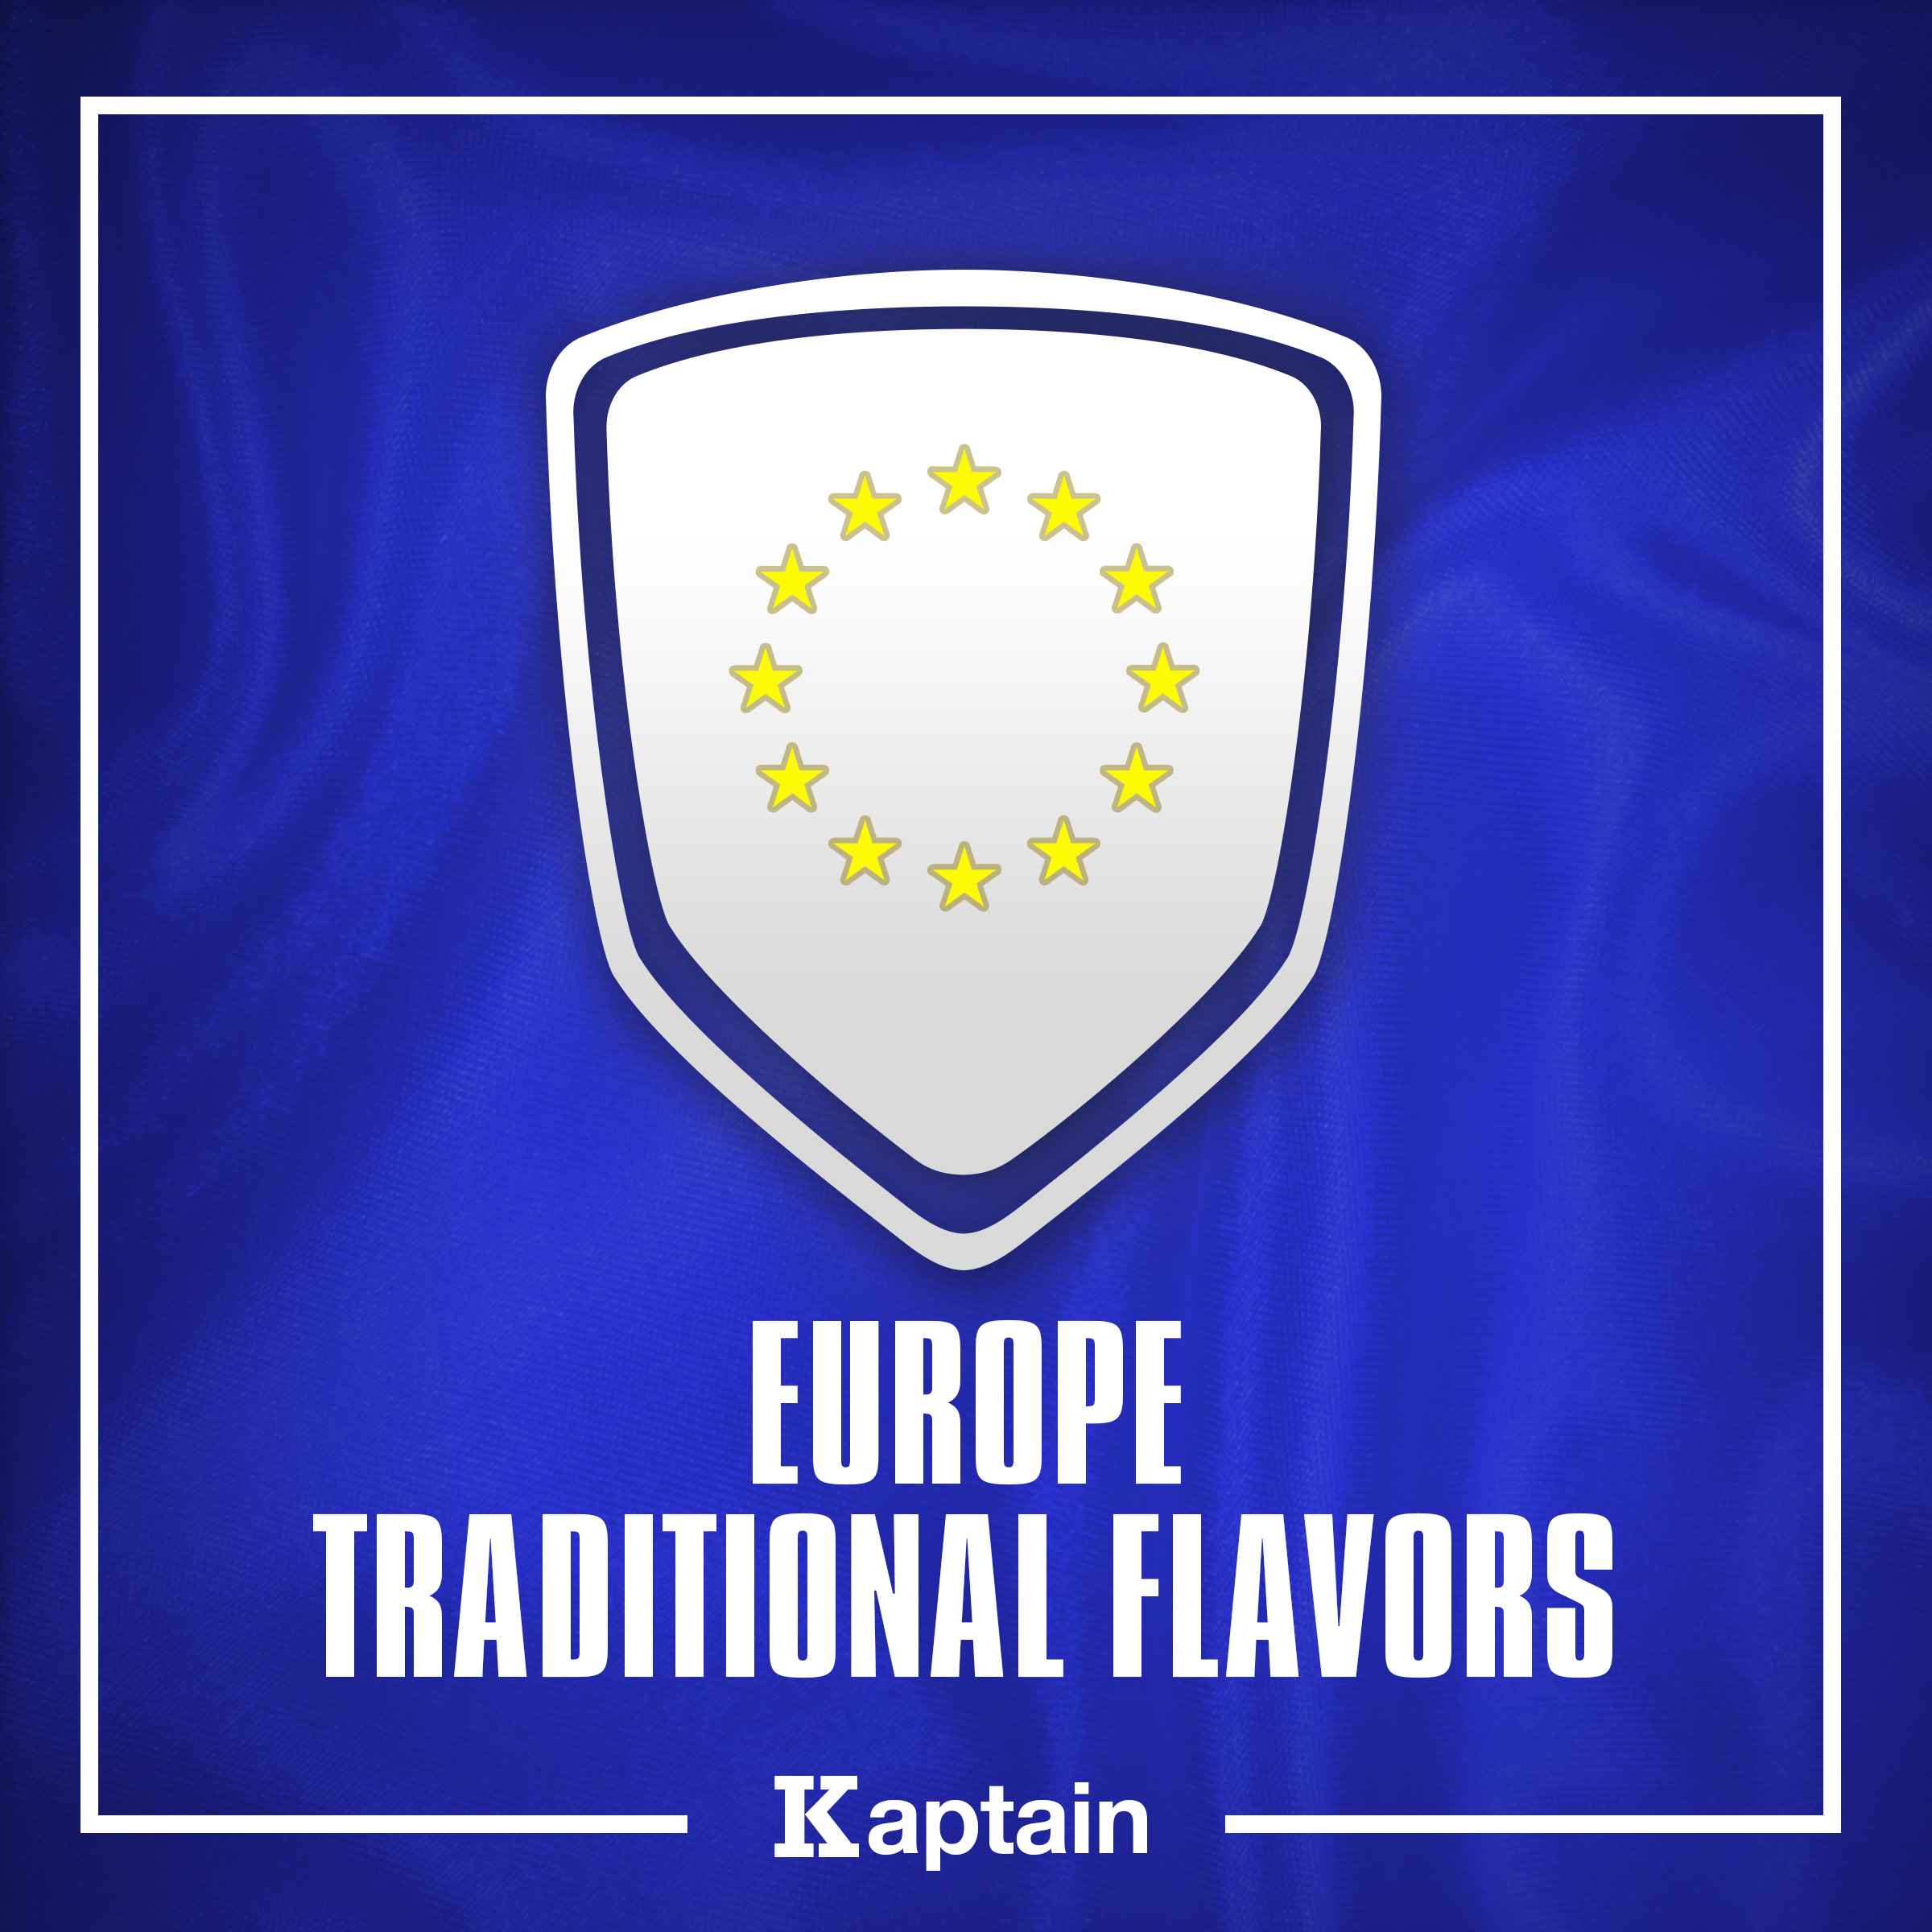 Europe Traditional Flavors